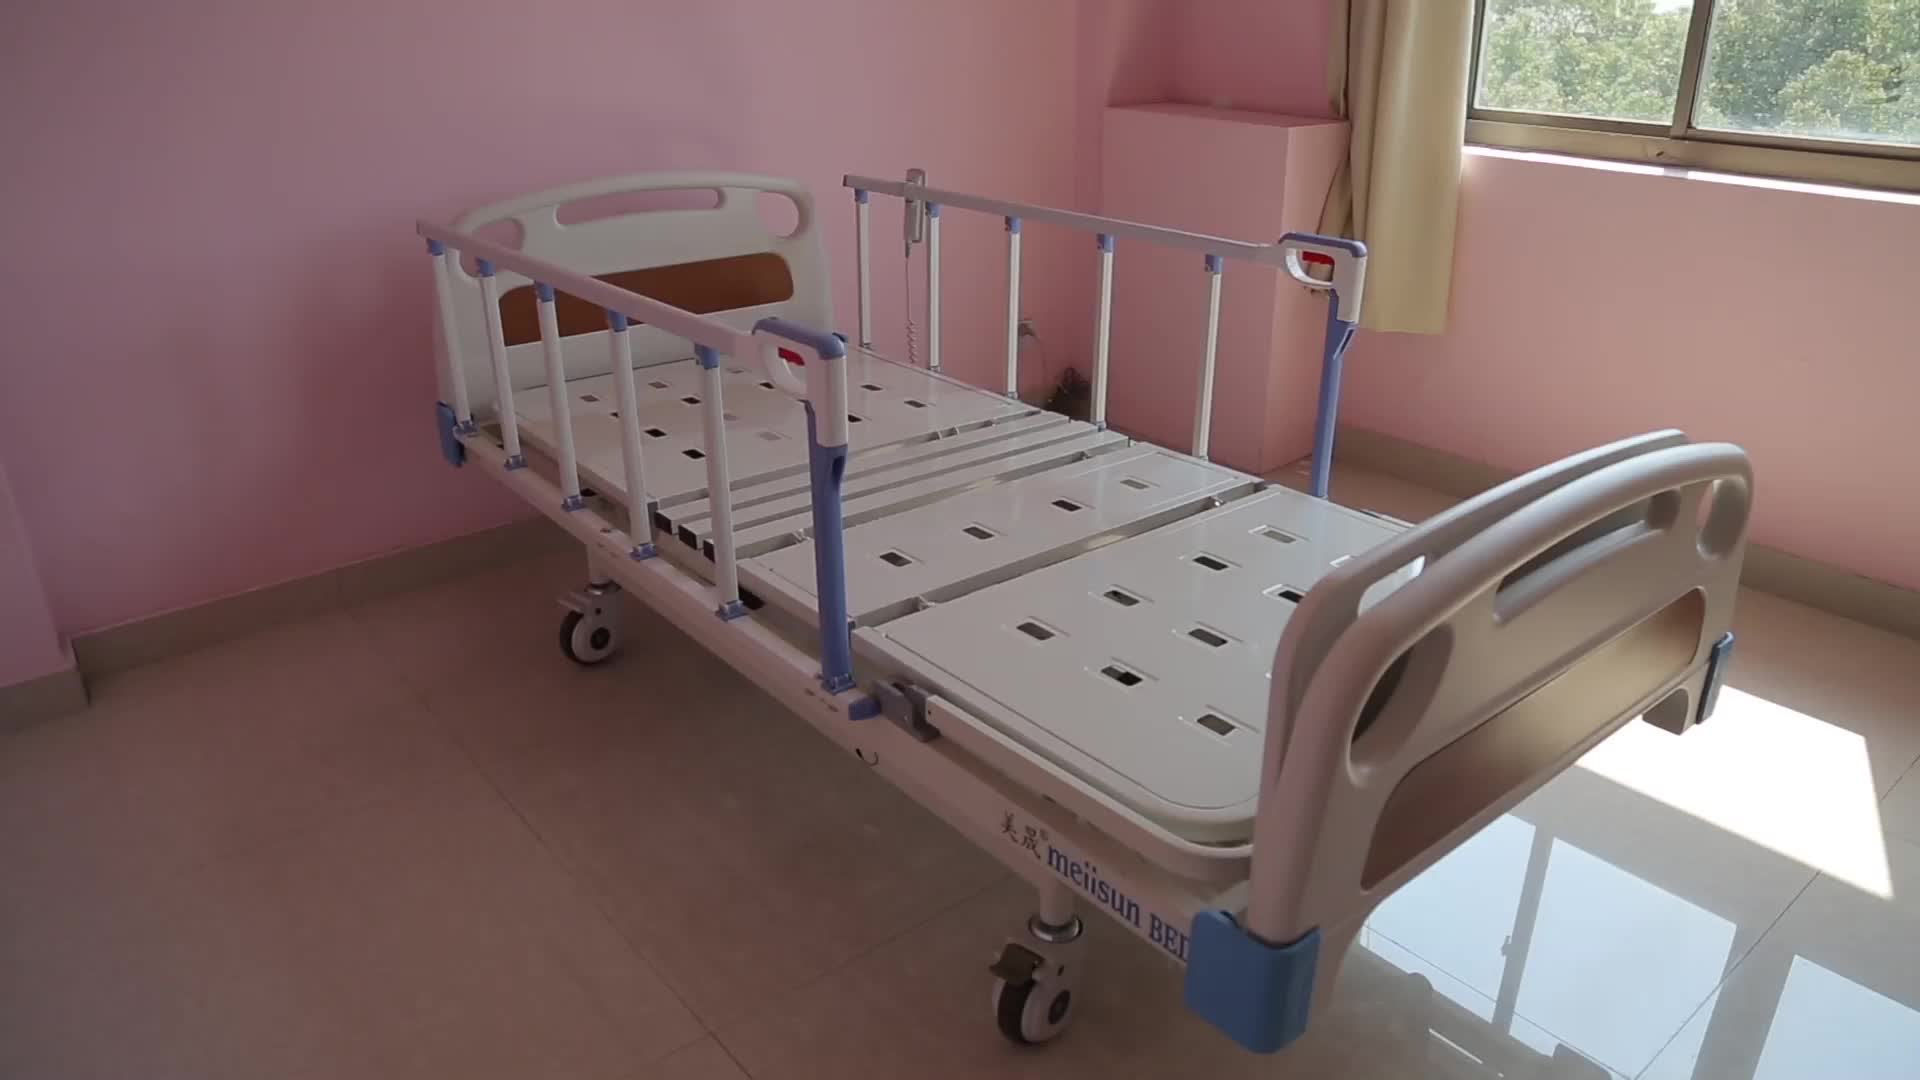 What medical bed to buy for a sick person 98